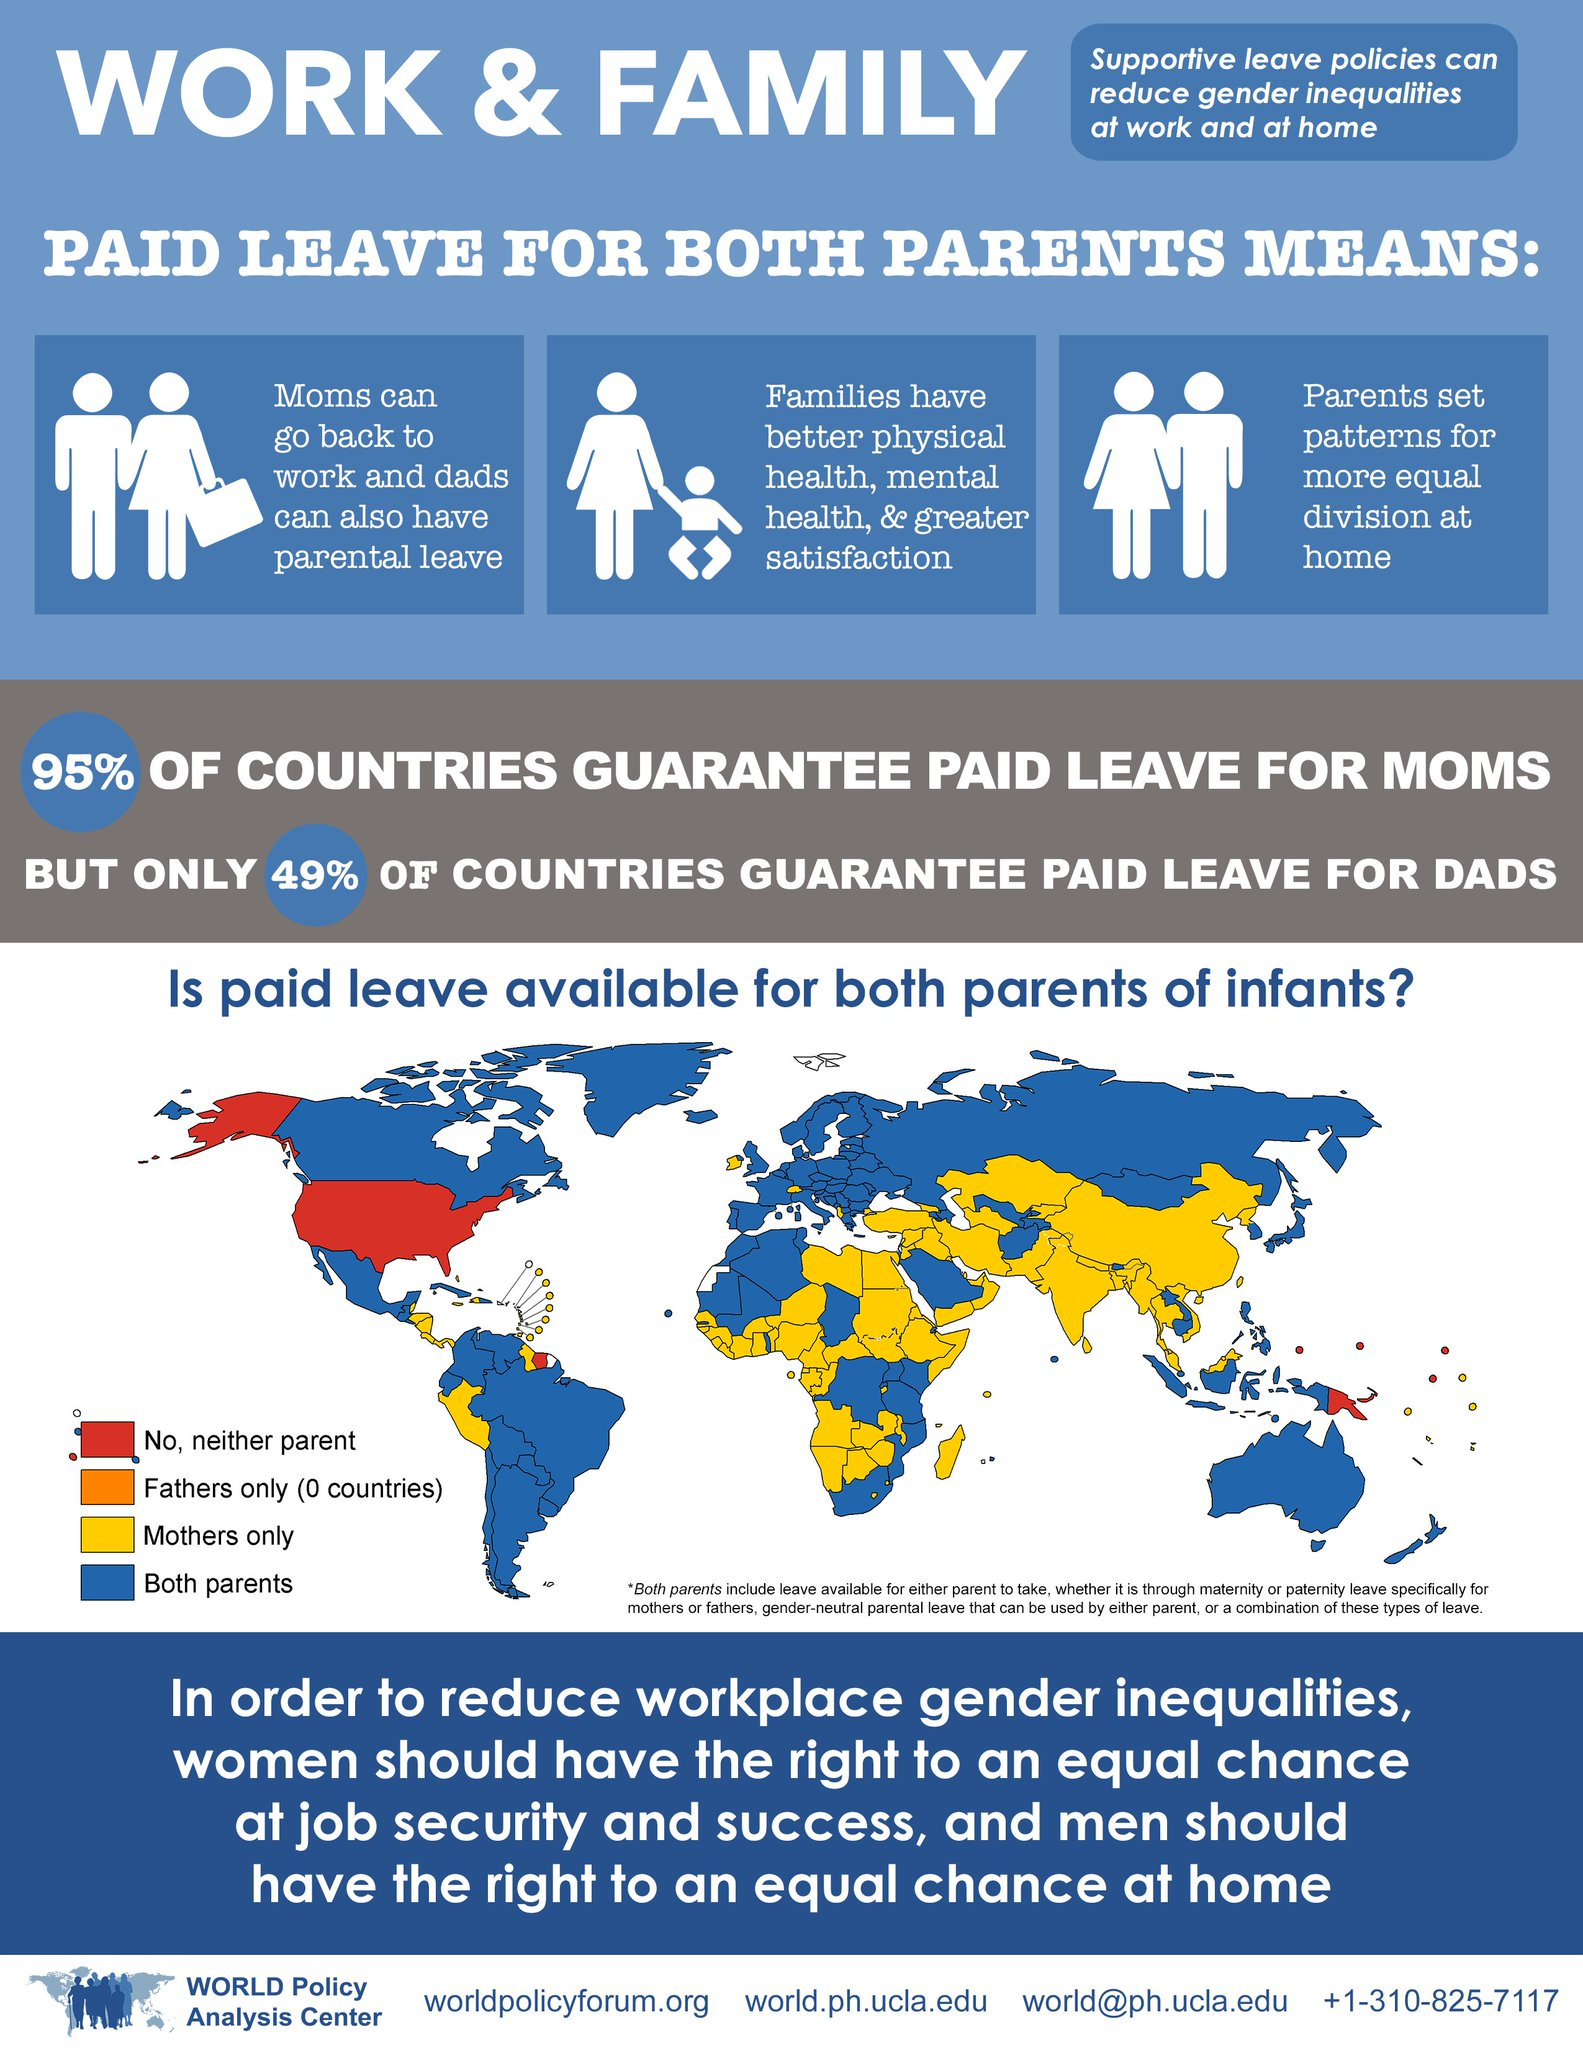 Supportive leave policies can reduce gender inequality at work #DayofFacts  https://t.co/Nlju2vdoXd https://t.co/YoWWdfgqDd